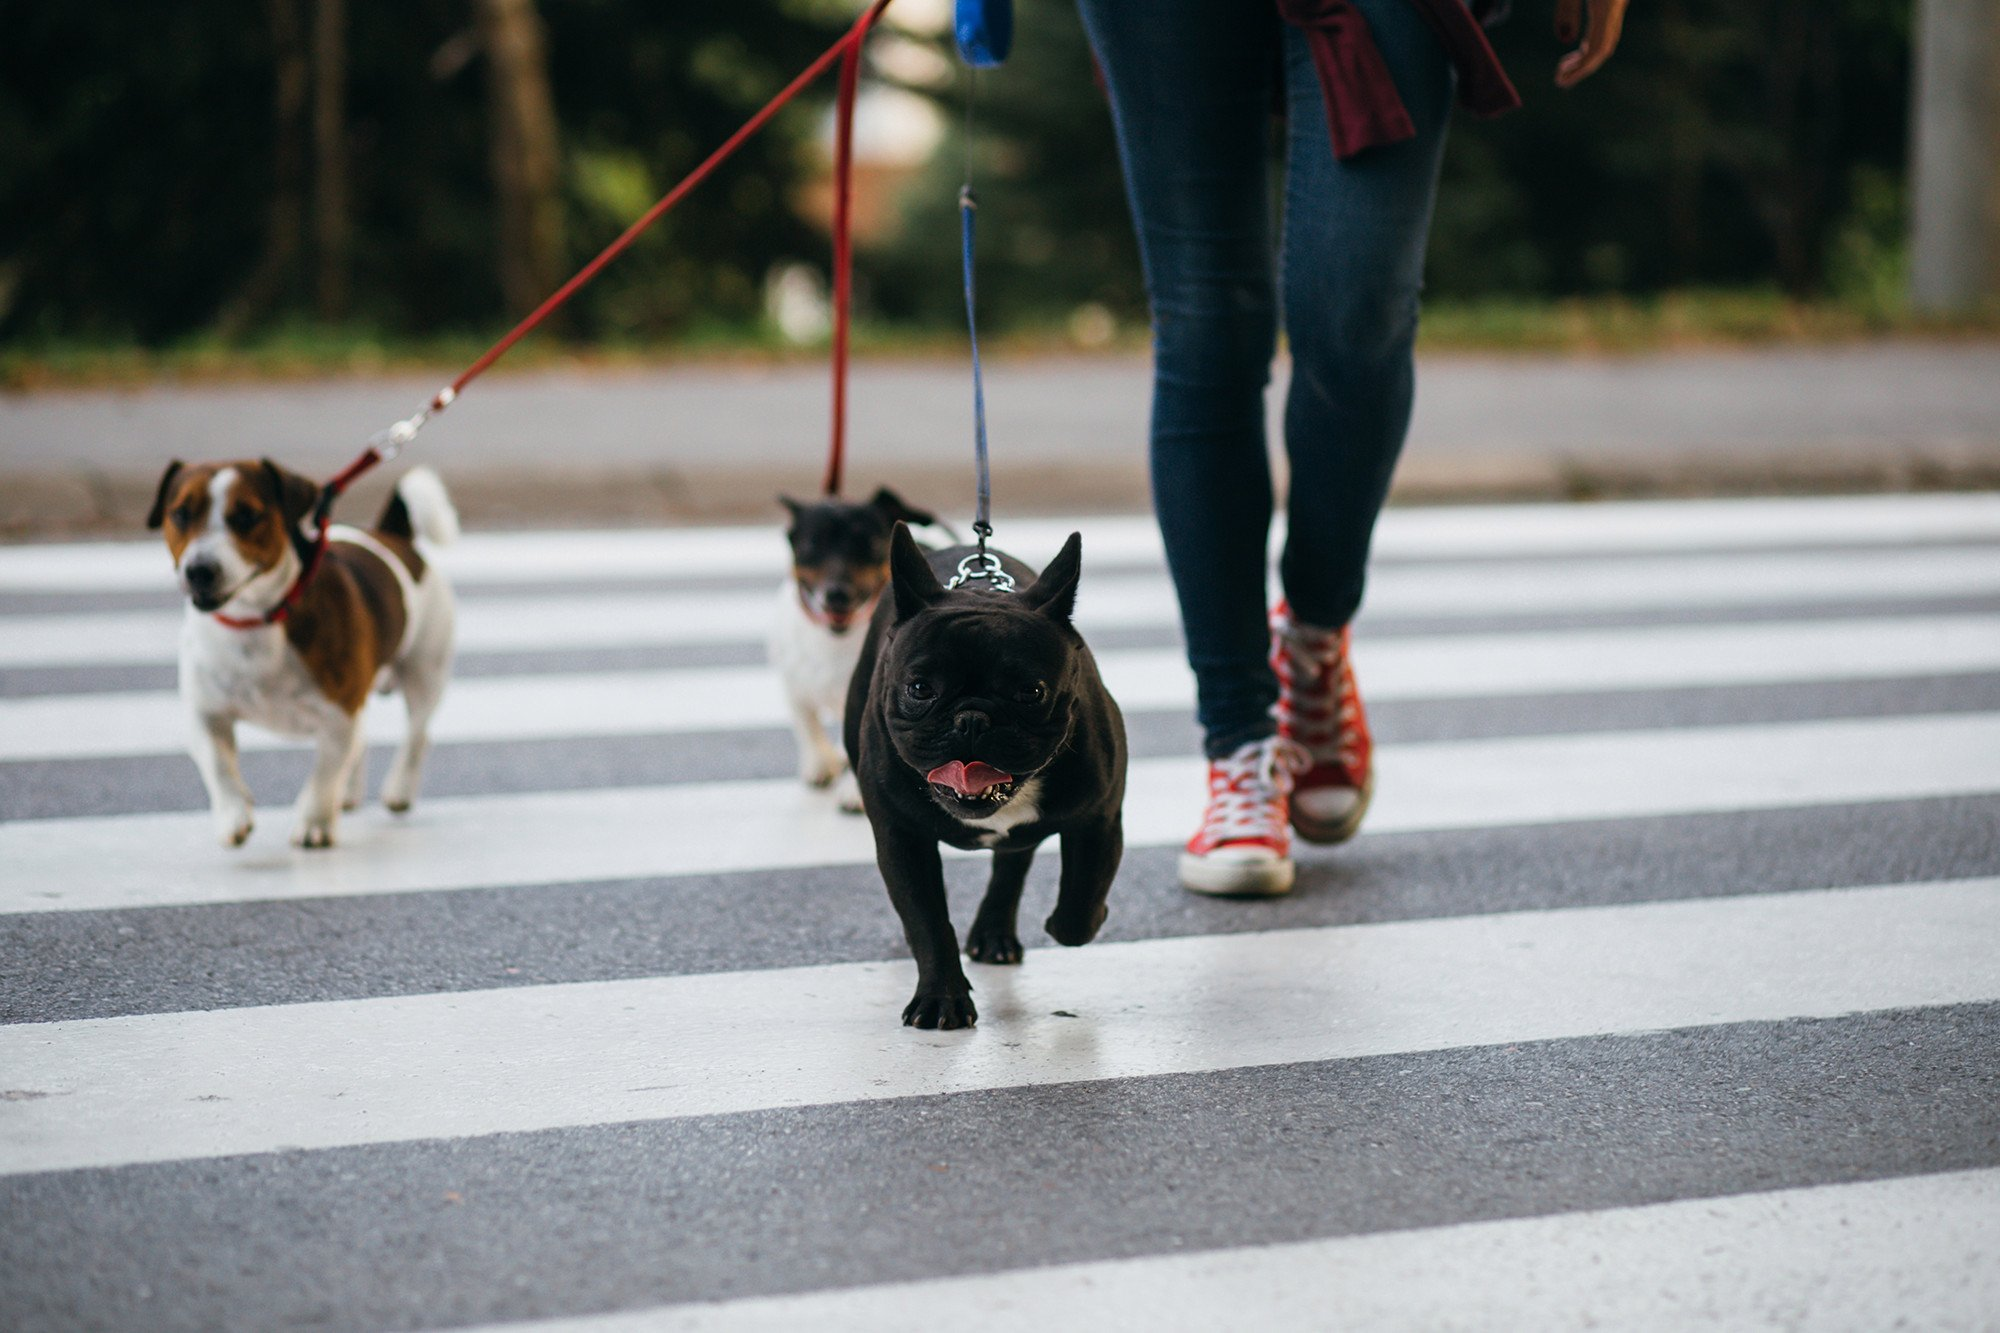 Dog-walking app that lost pooch gets $300M in backing